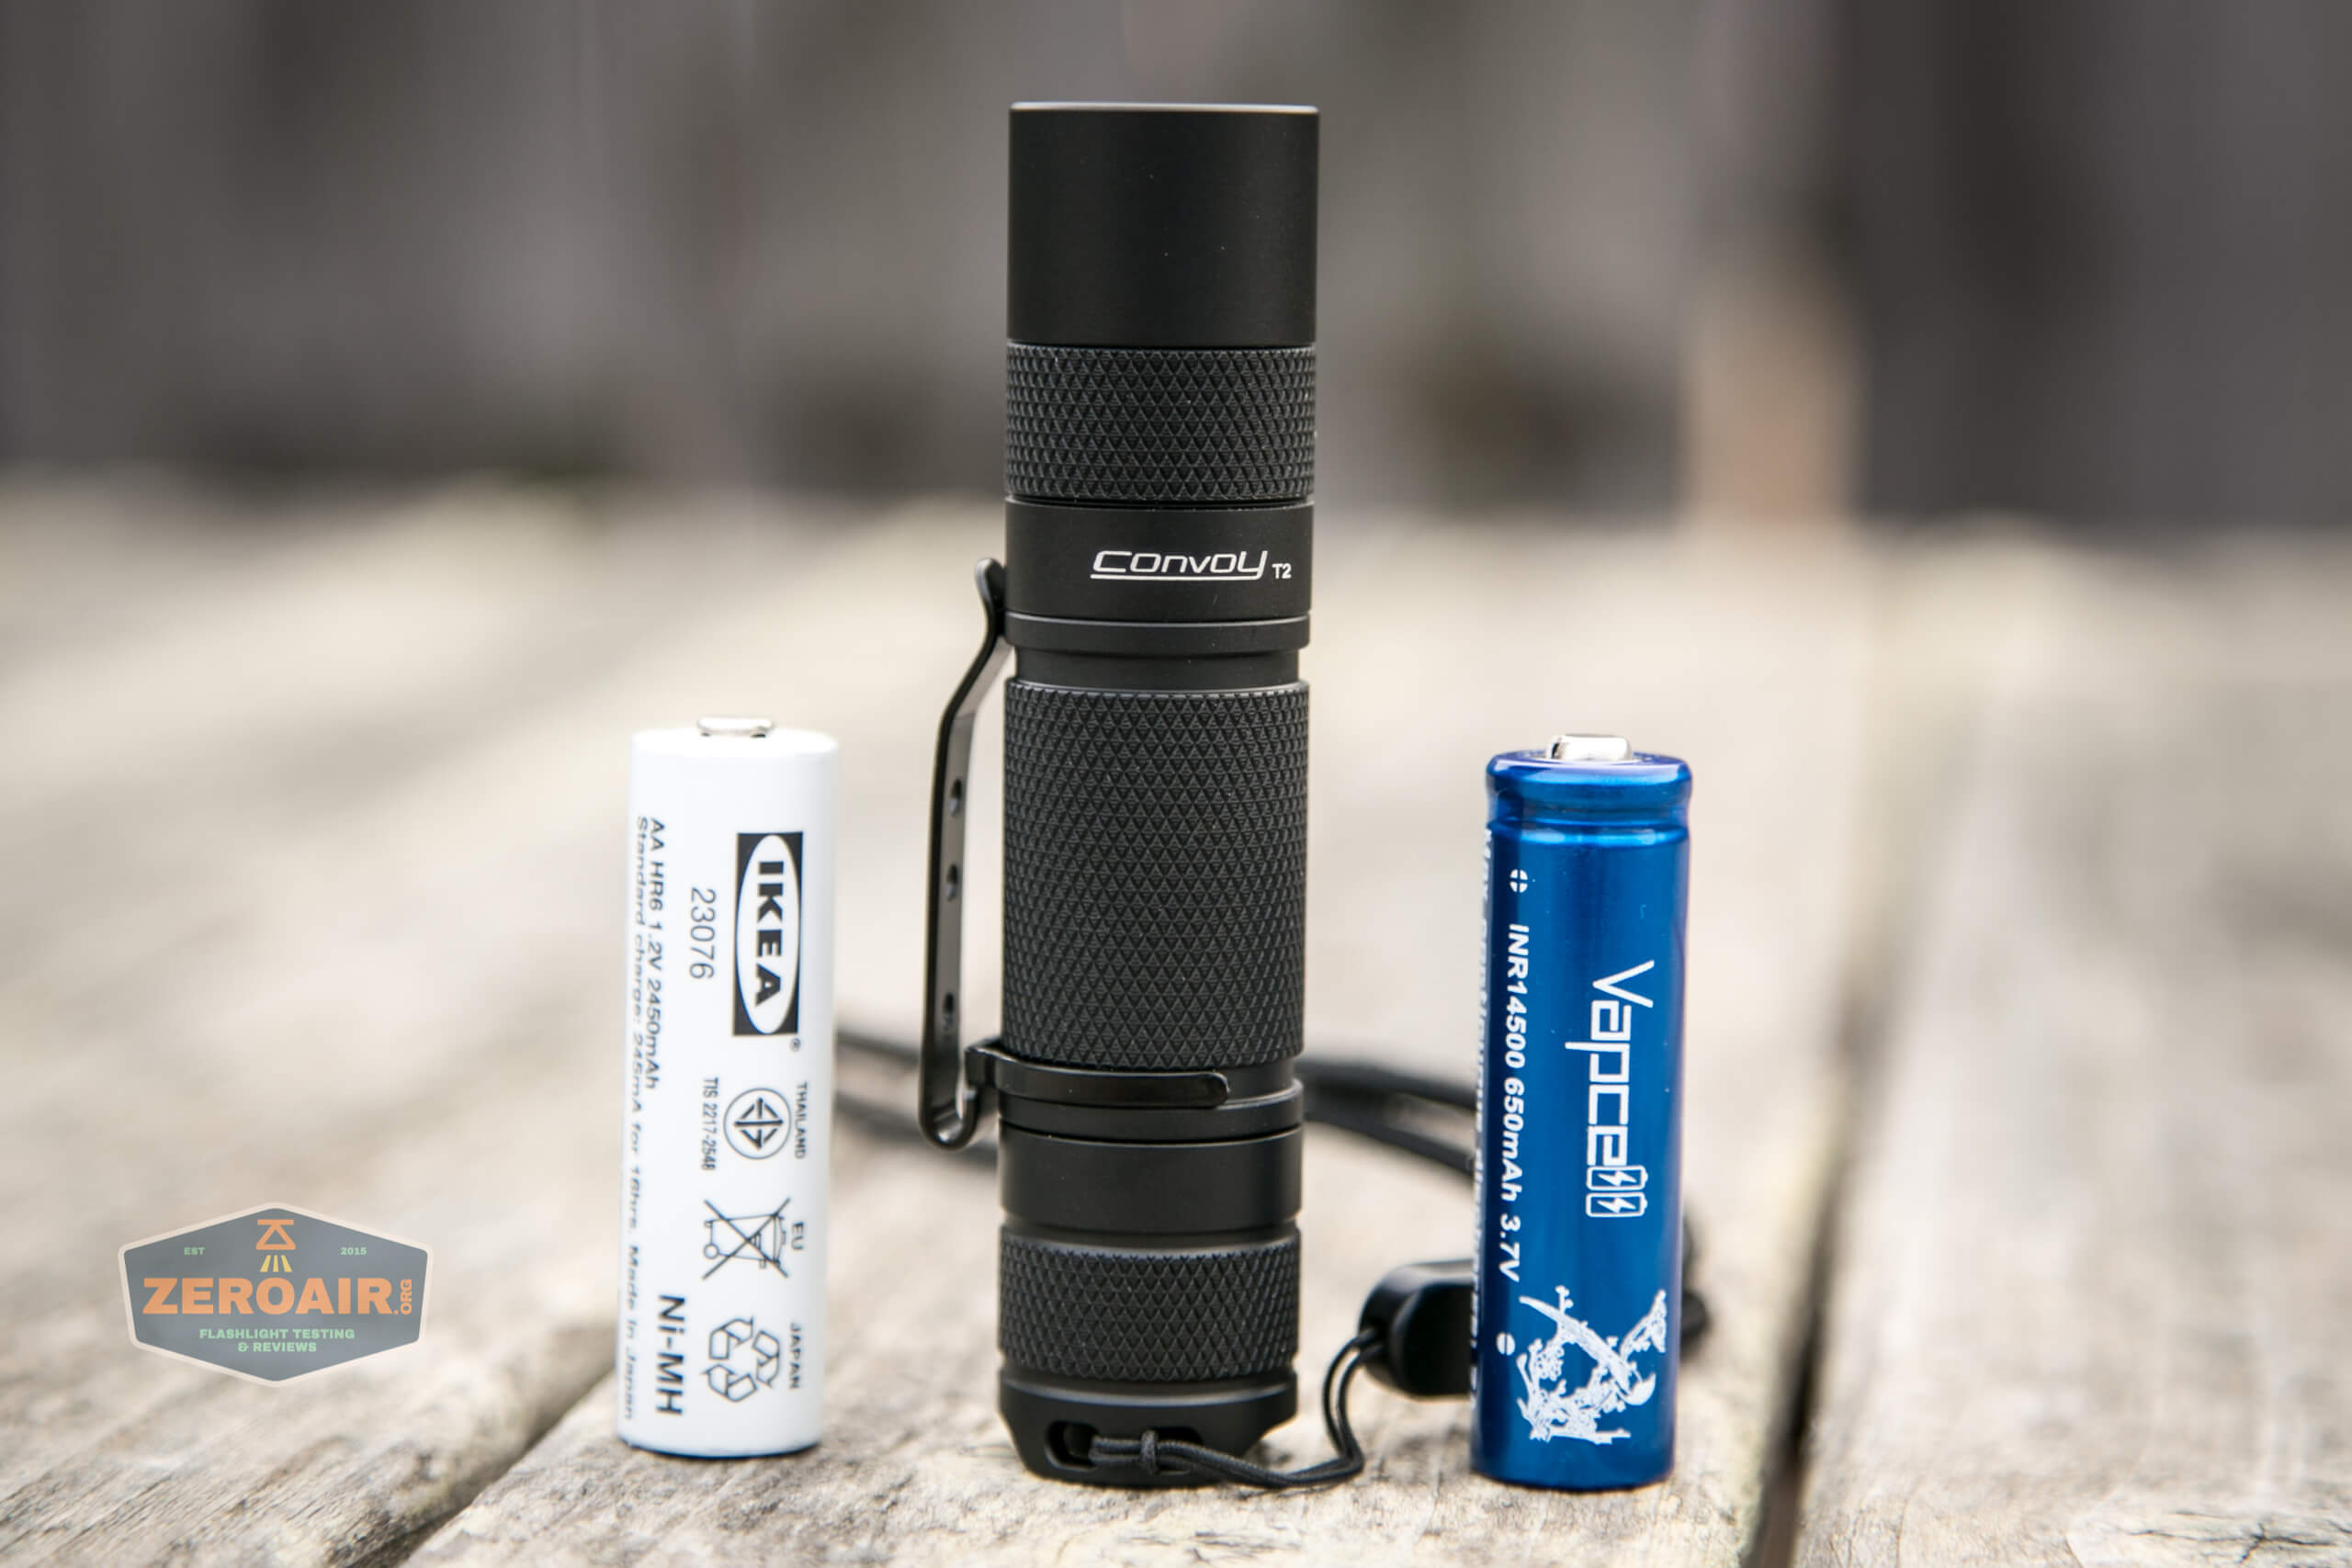 convoy t2 updated 14500/AA flashlight both cells